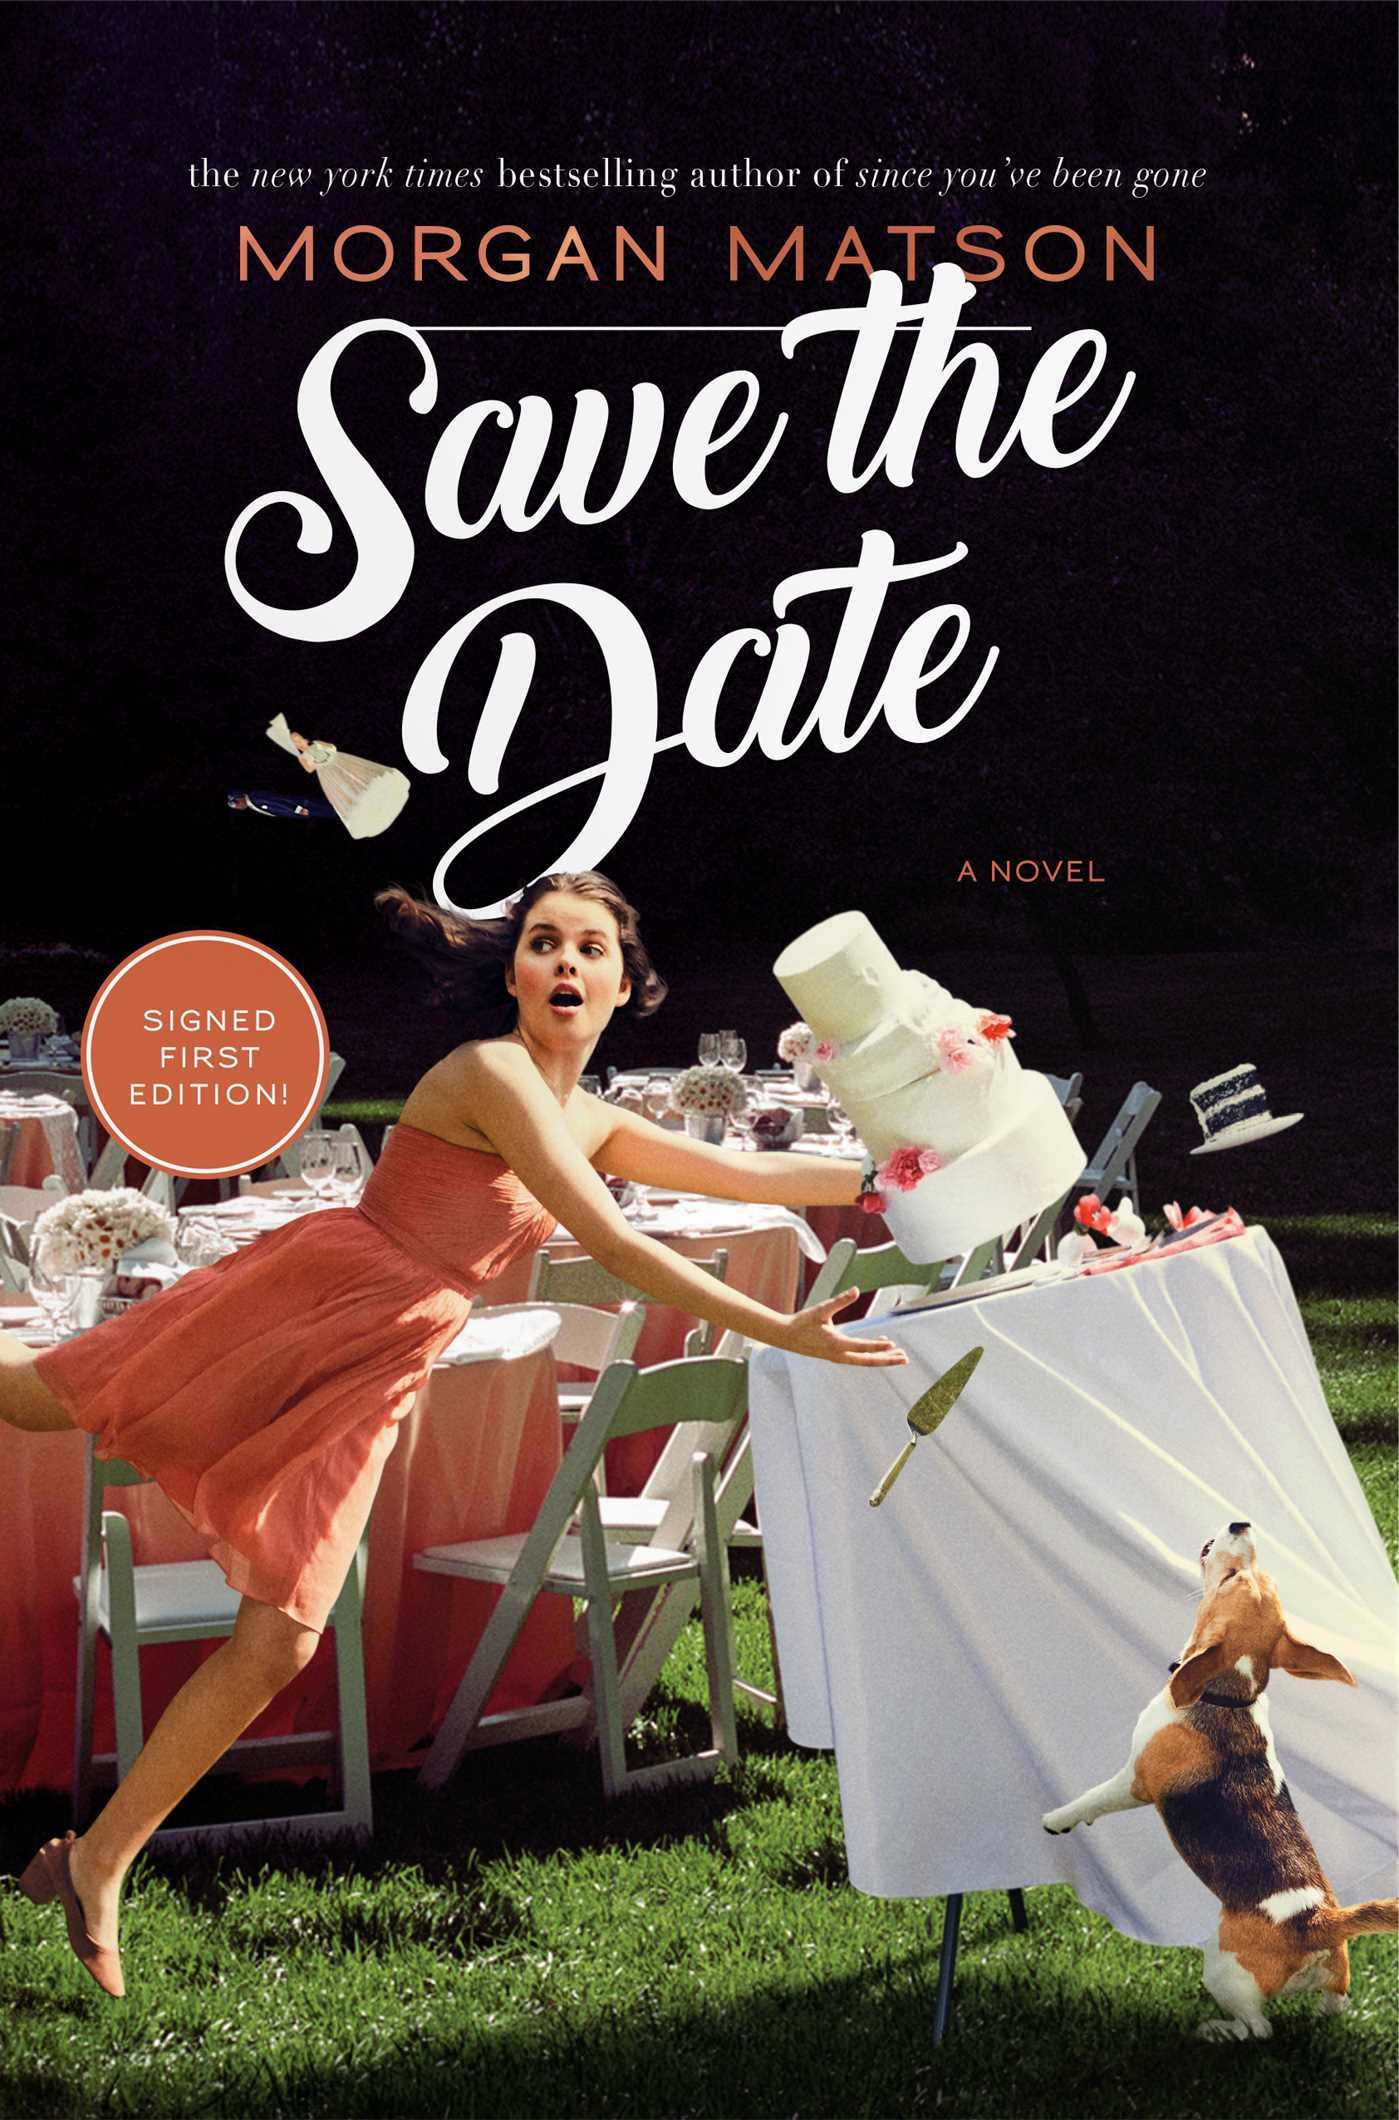 Amazon.com: Save the Date (9781481404570): Matson, Morgan: Books